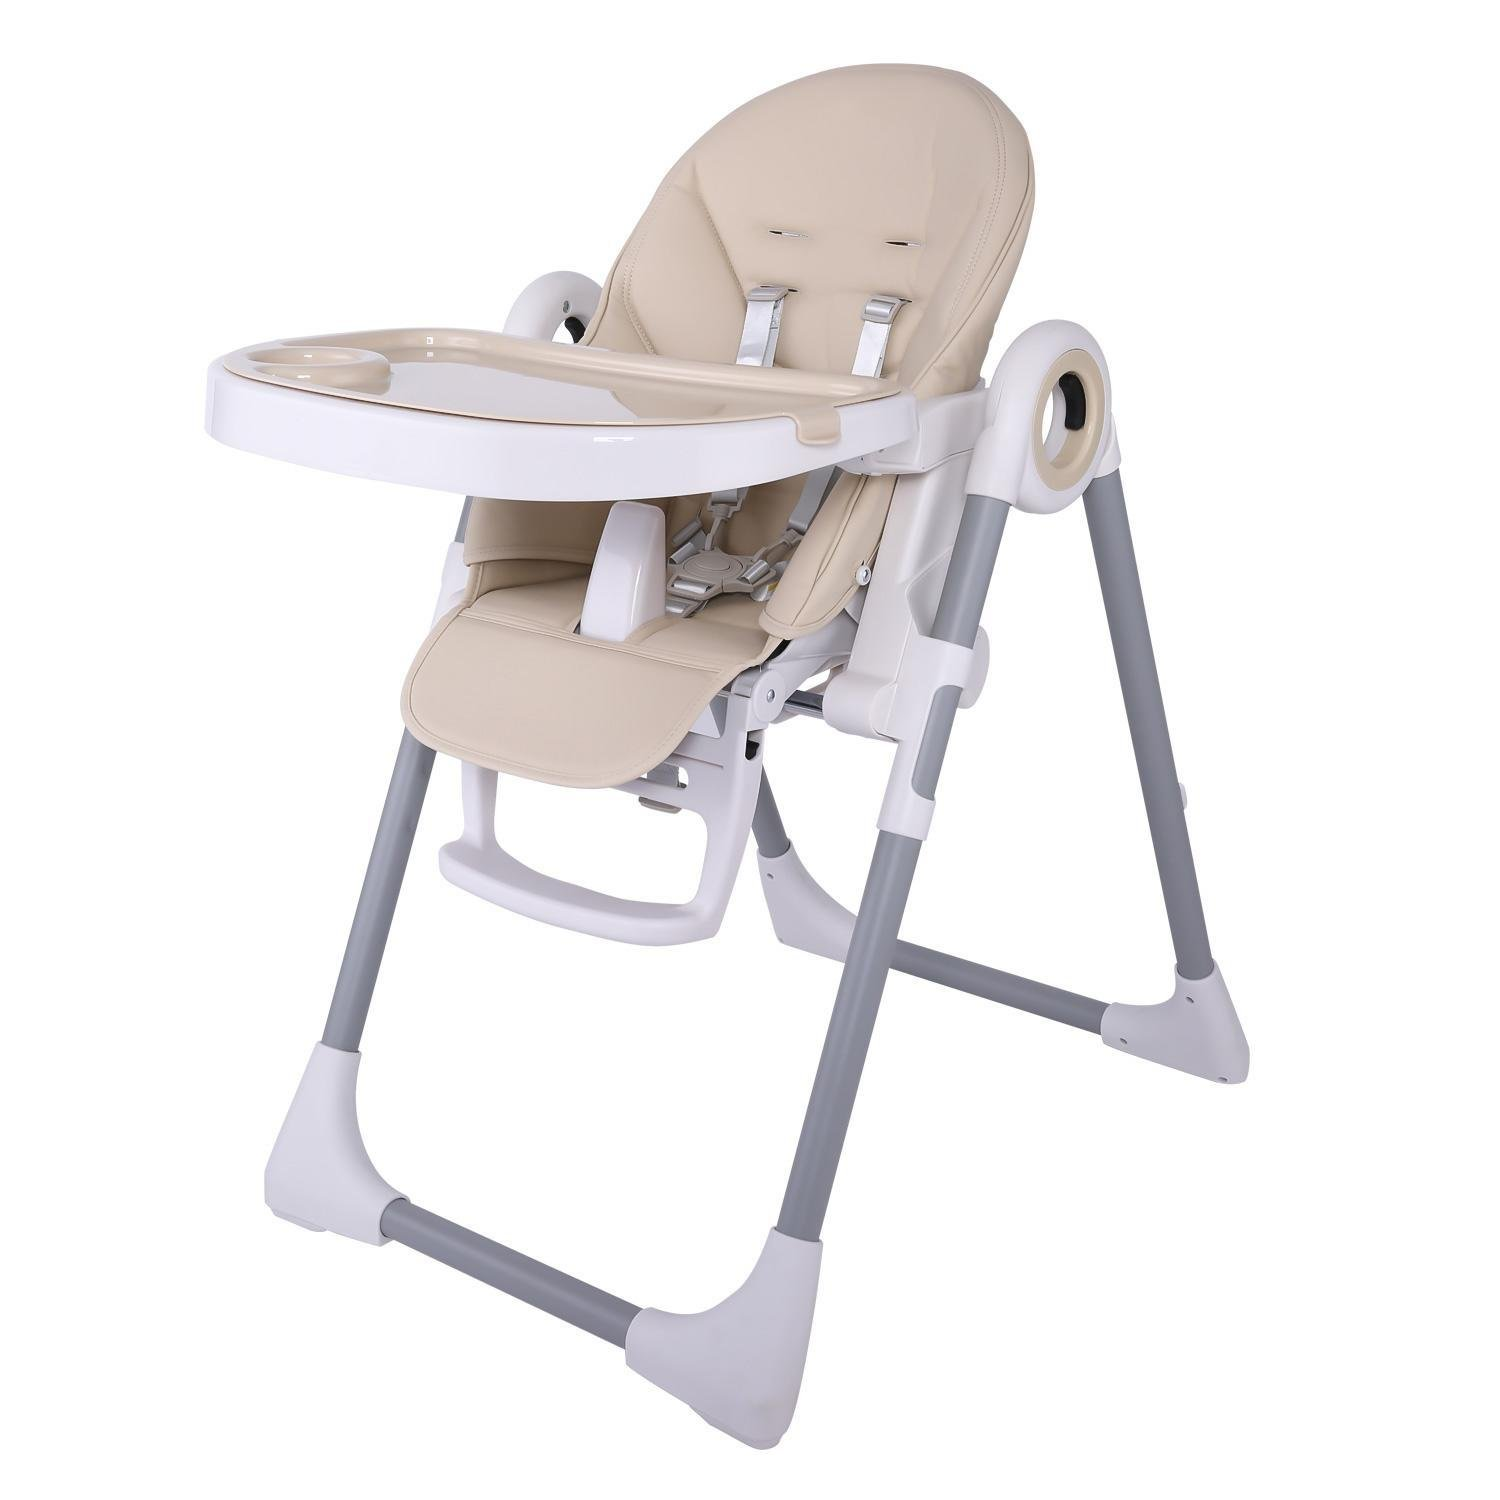 PEATAO Foldable High Chairs for Babies and Toddlers, Adjustable Booster Toddler Dining Table Chair (US STOCK) (Yellow)